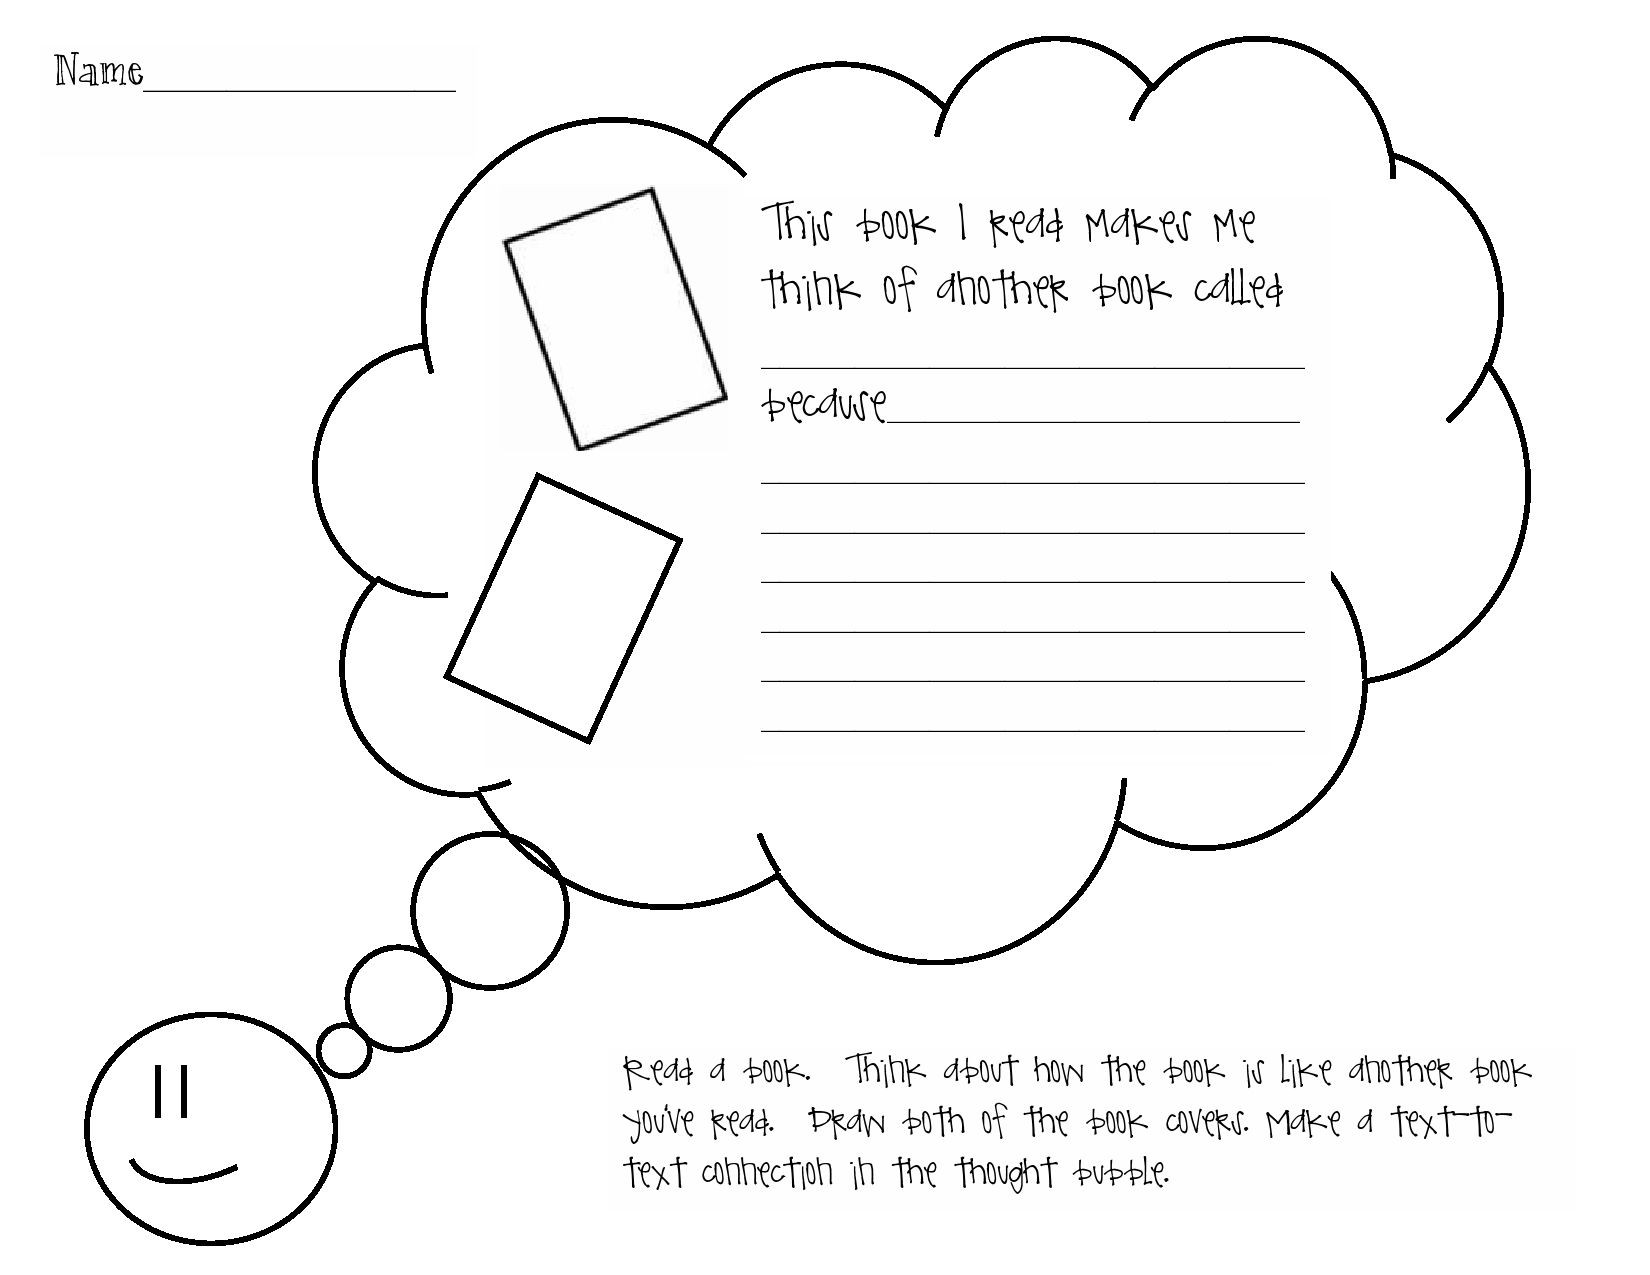 text to text connections worksheets